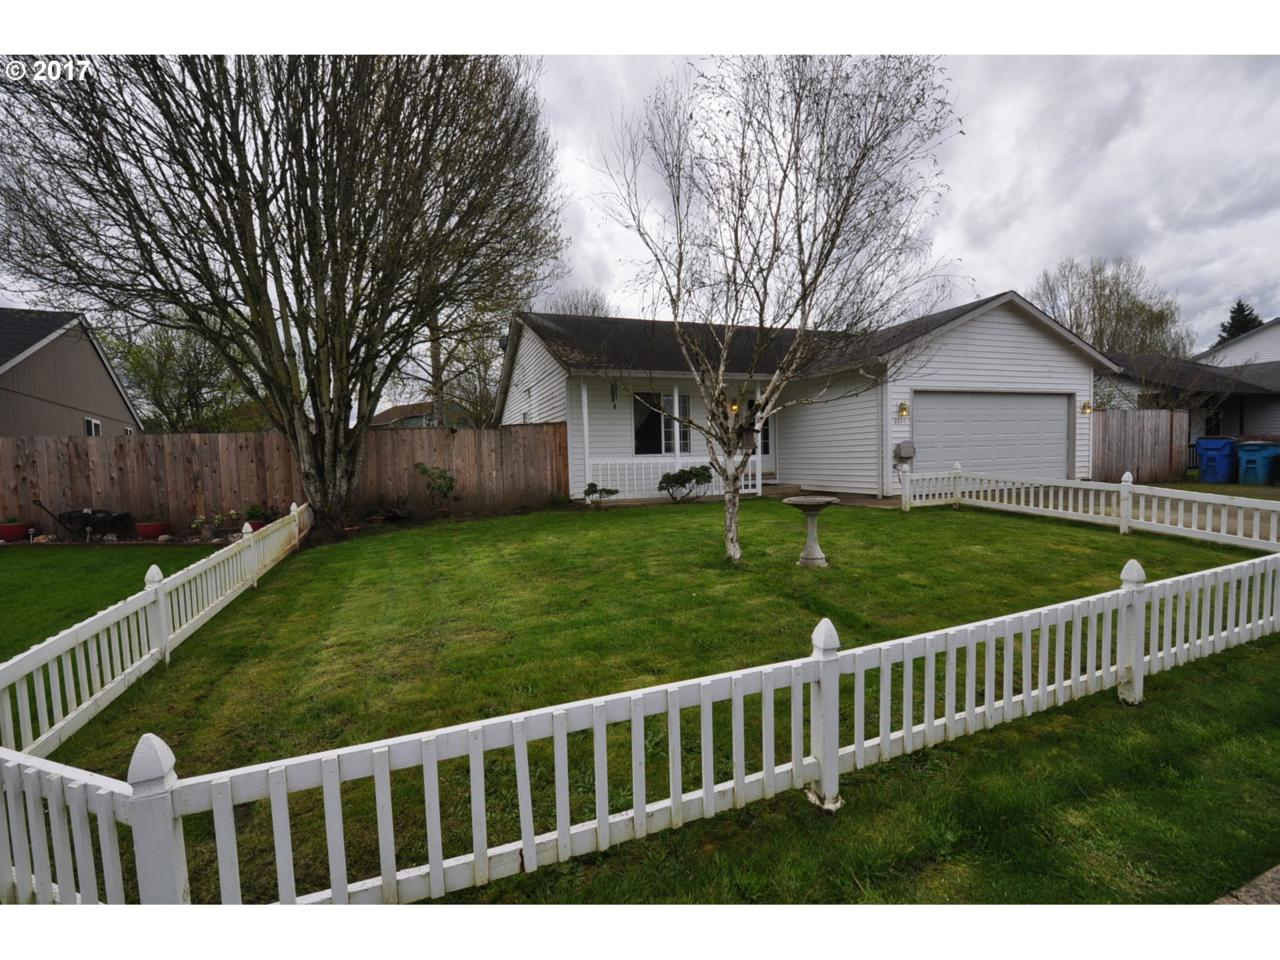 2211 SW 10TH St, Battle Ground, WA 98604 (MLS #17316862) :: Cano Real Estate